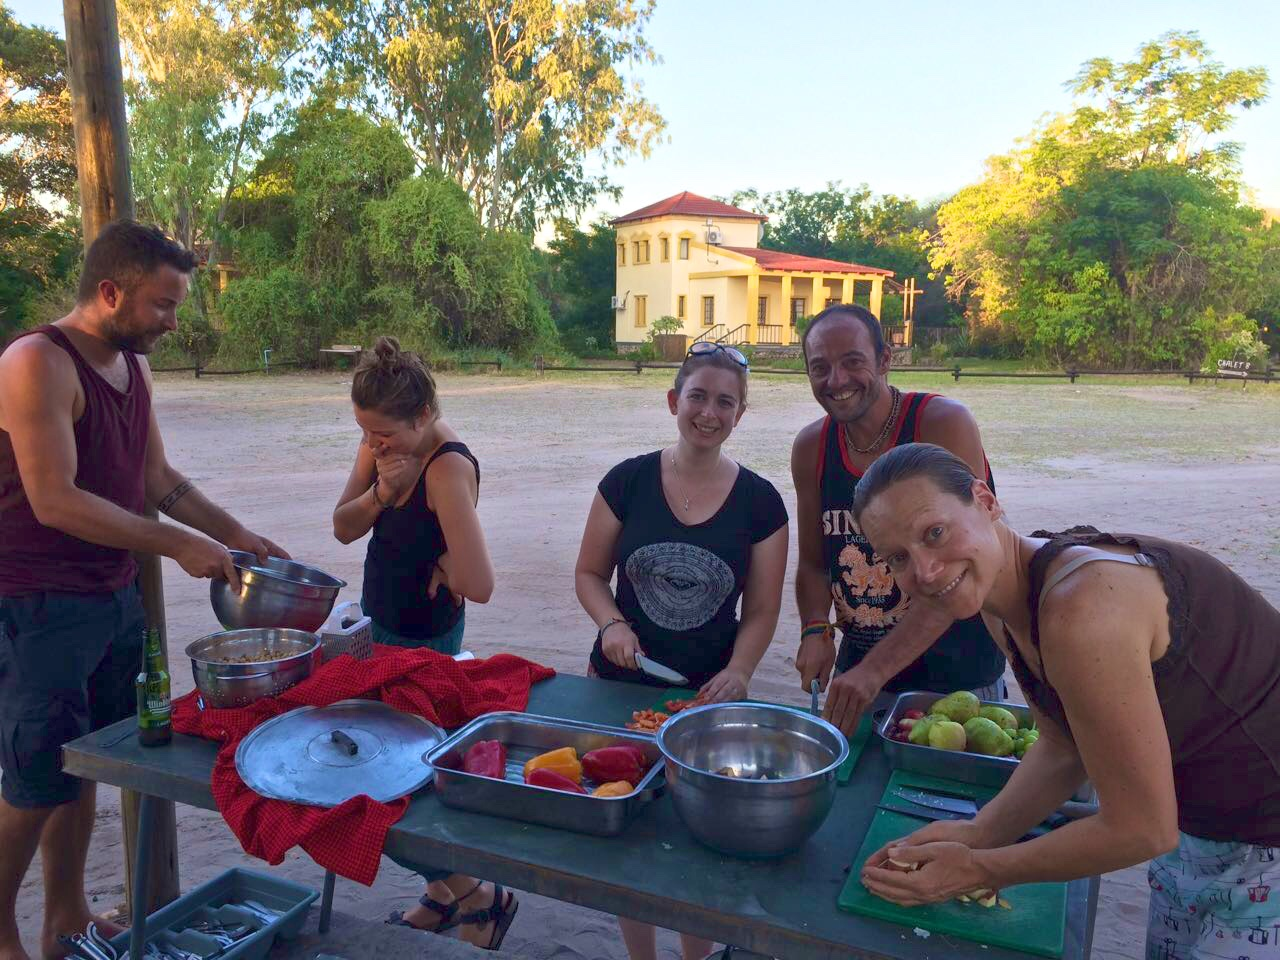 Prepping dinner at camp